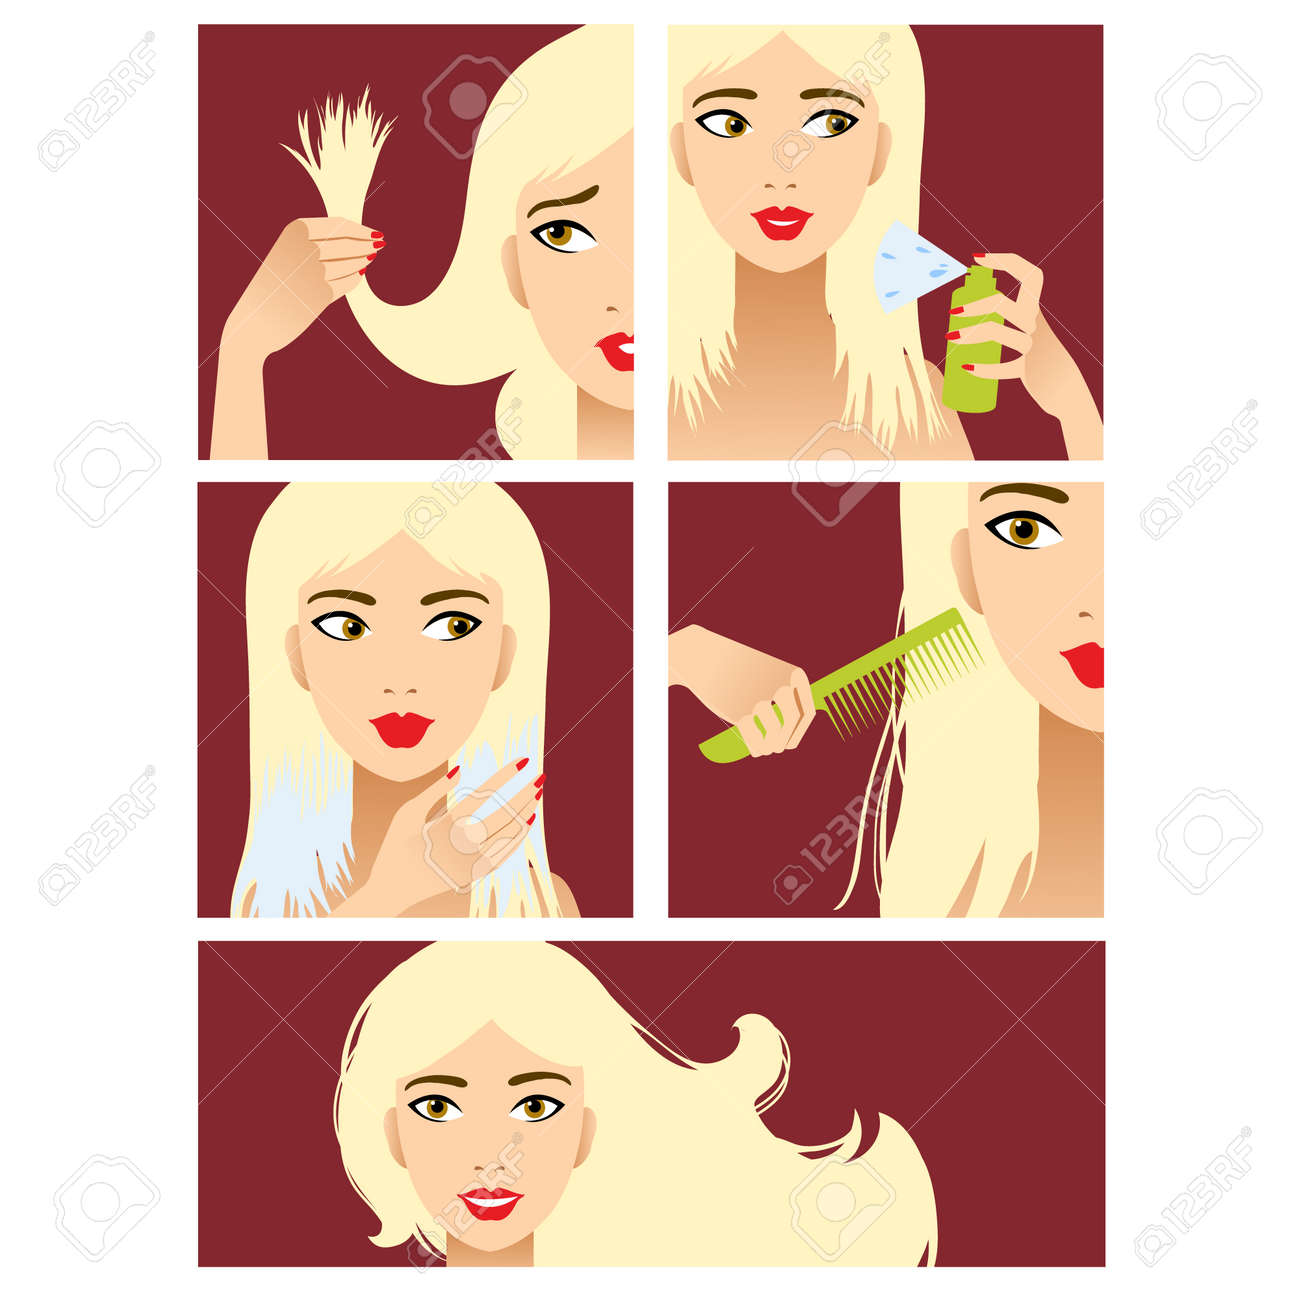 Icons set in flat design style with hair treatment, steps to prevent hair damage Stock Vector - 29110179